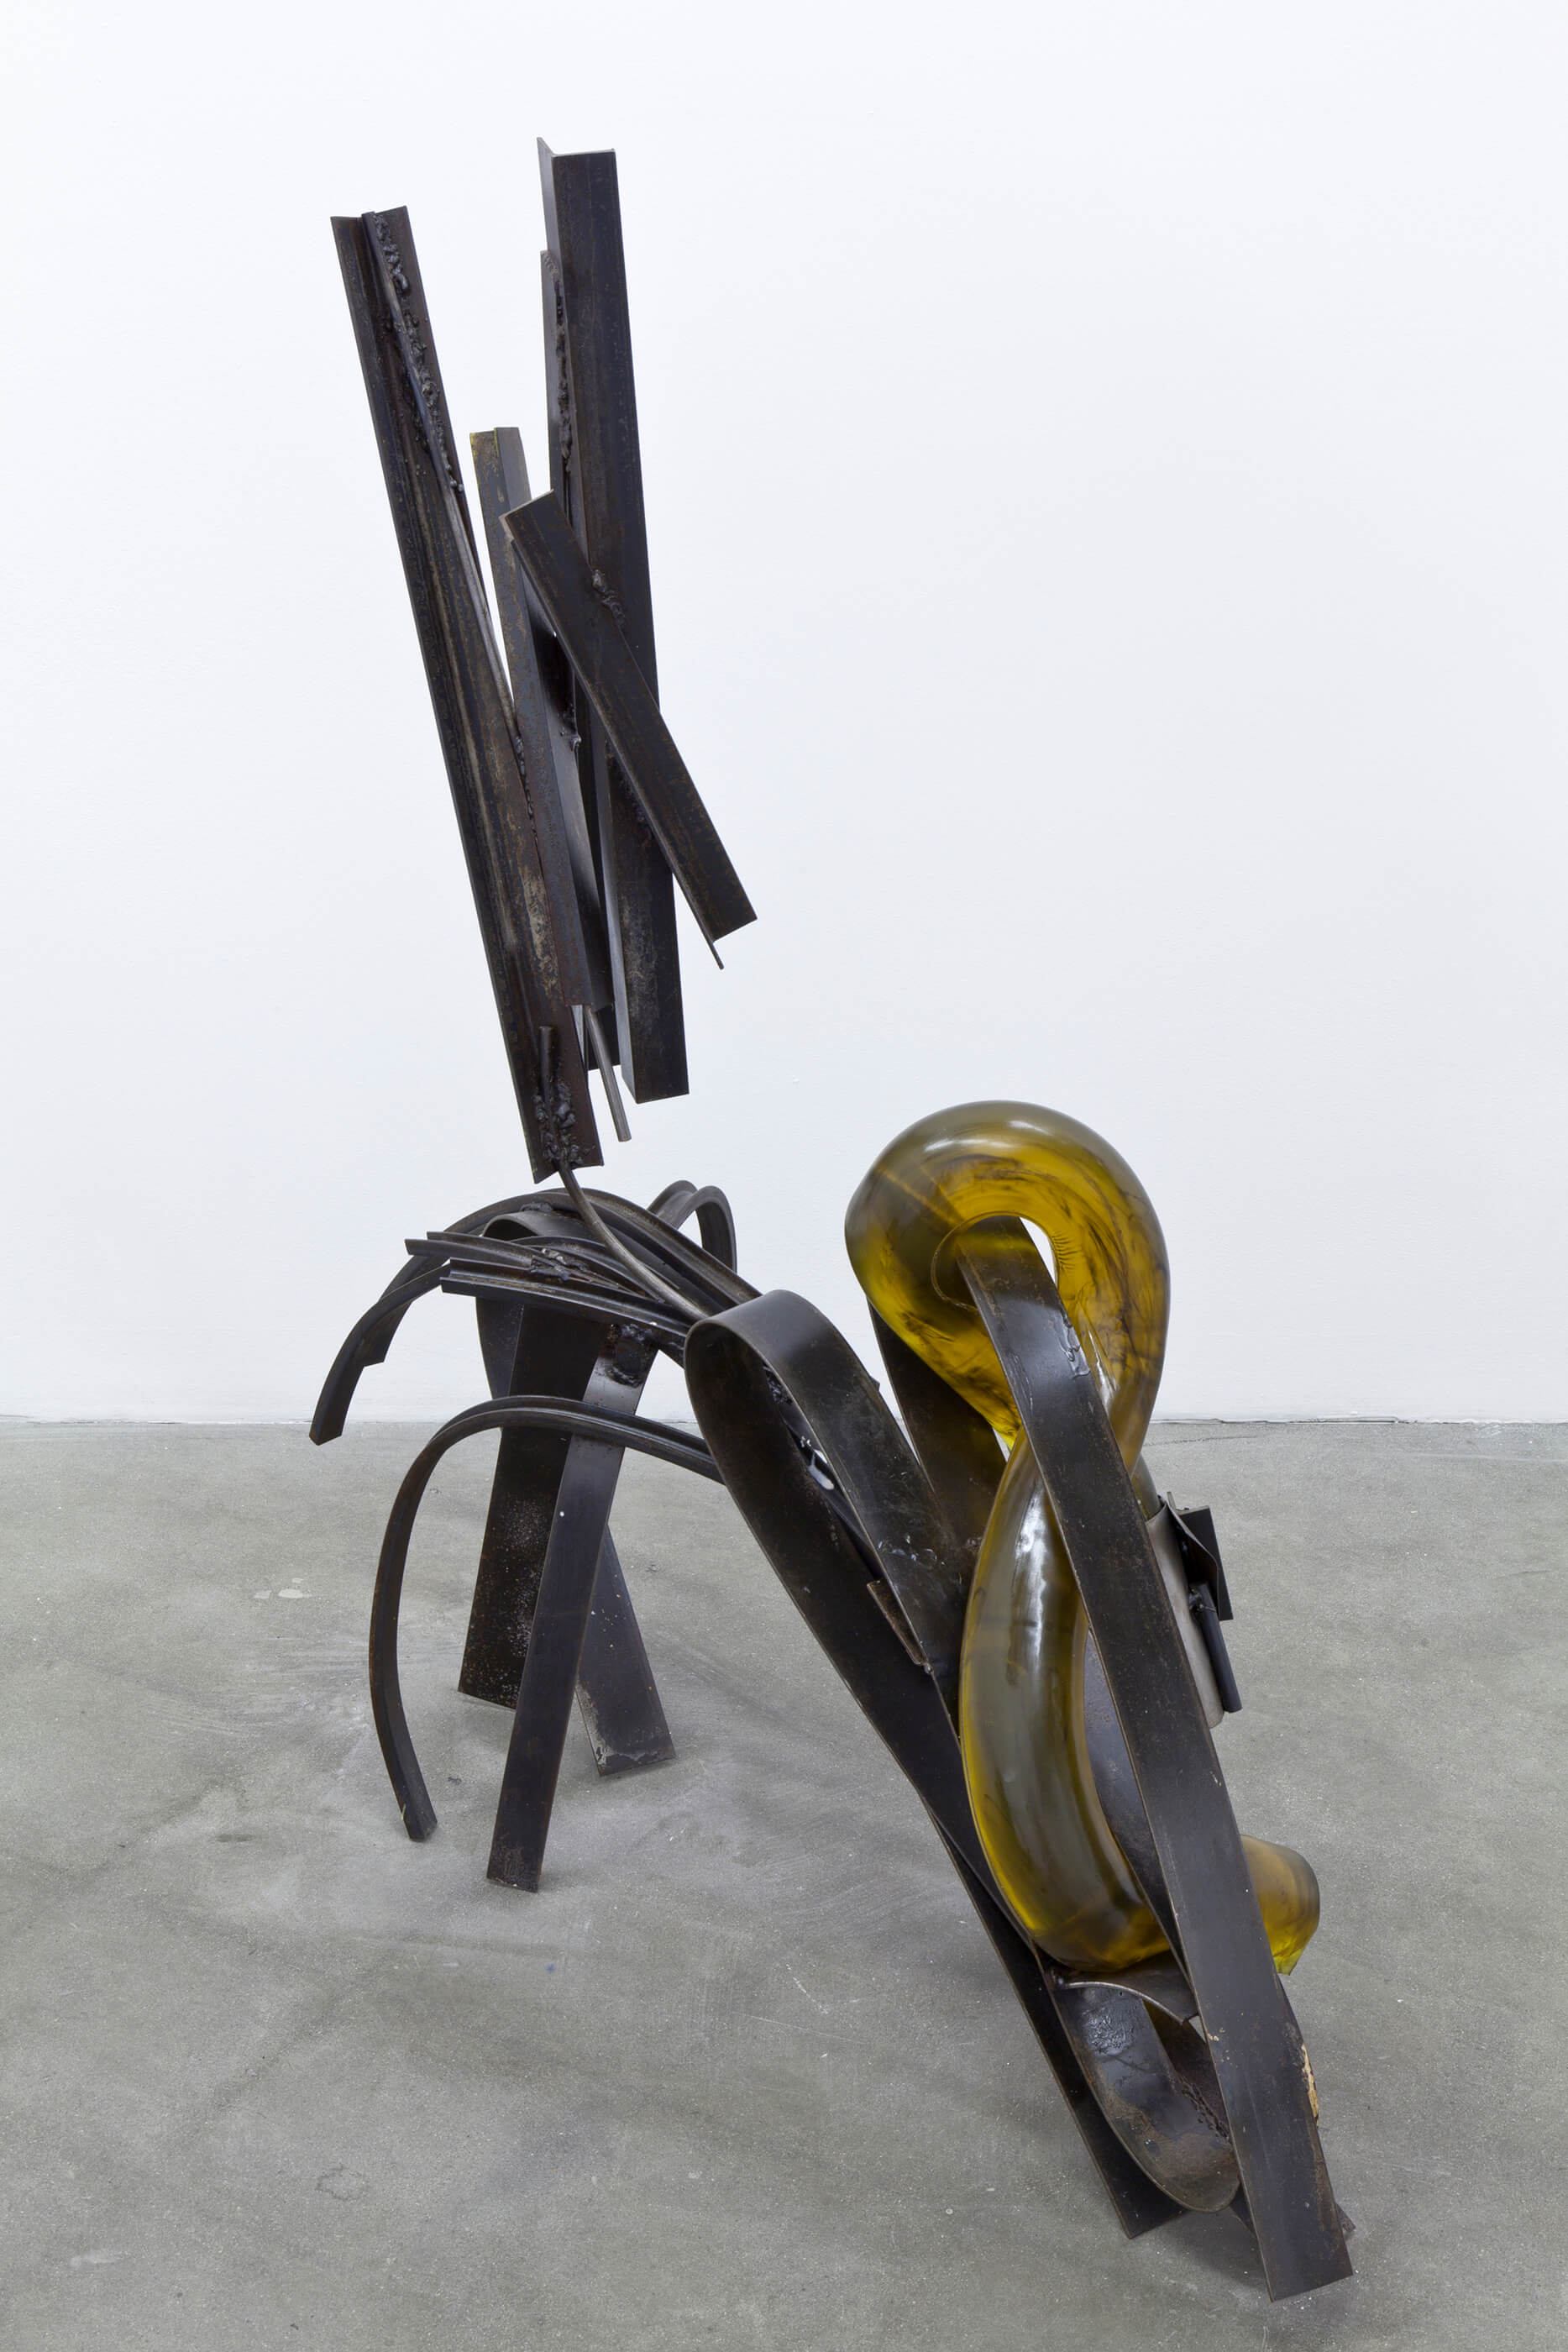 Larger crawler, amber, with cuff, Steel, urethane rubber, 48 x 46 x 16 inches, 2014